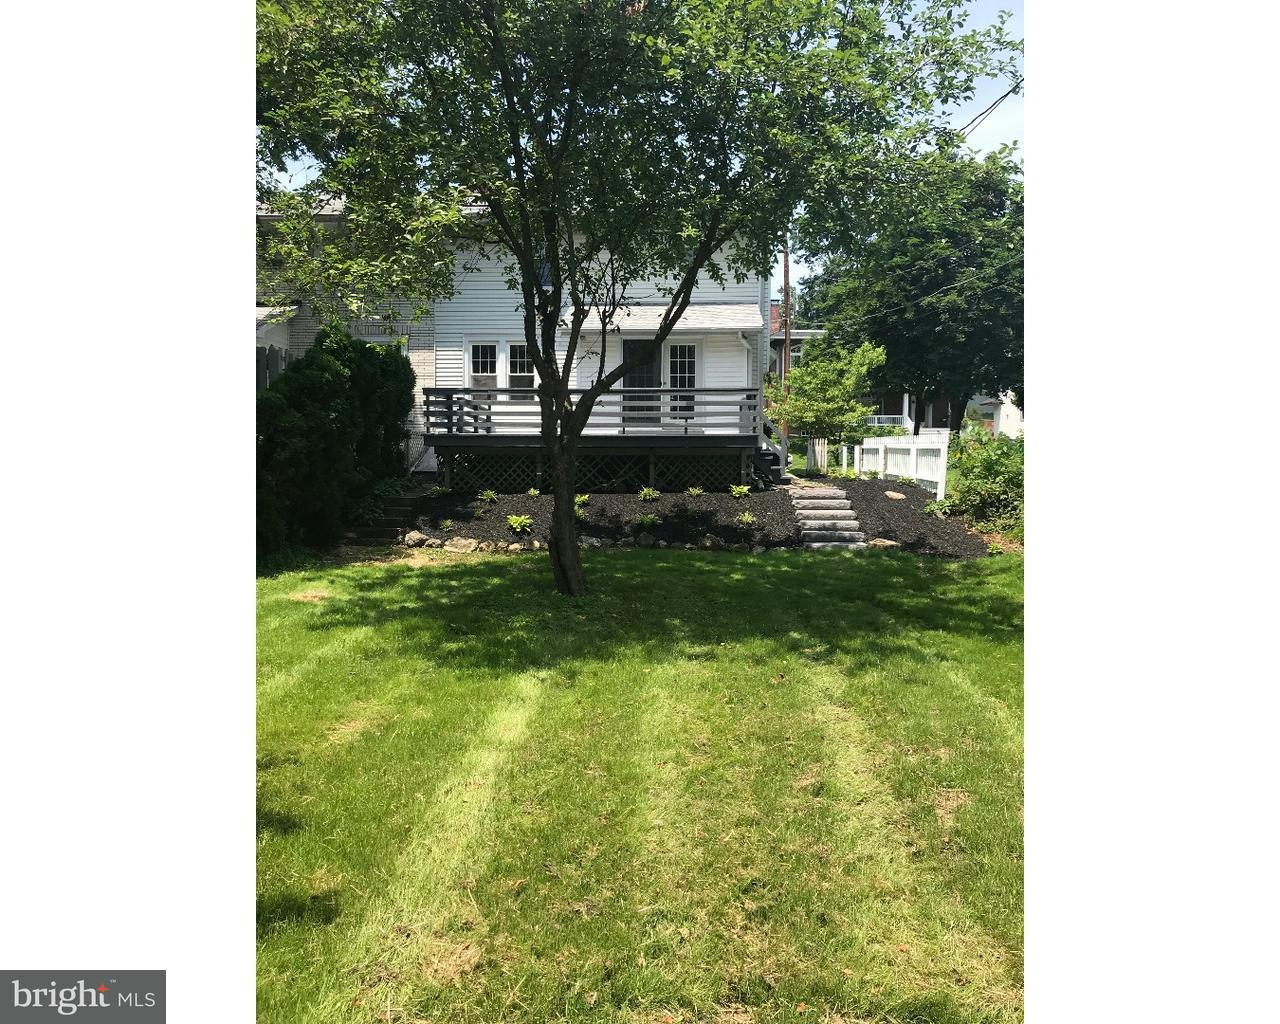 1046 TERRACE AVE, READING - Listed at $1,600, READING